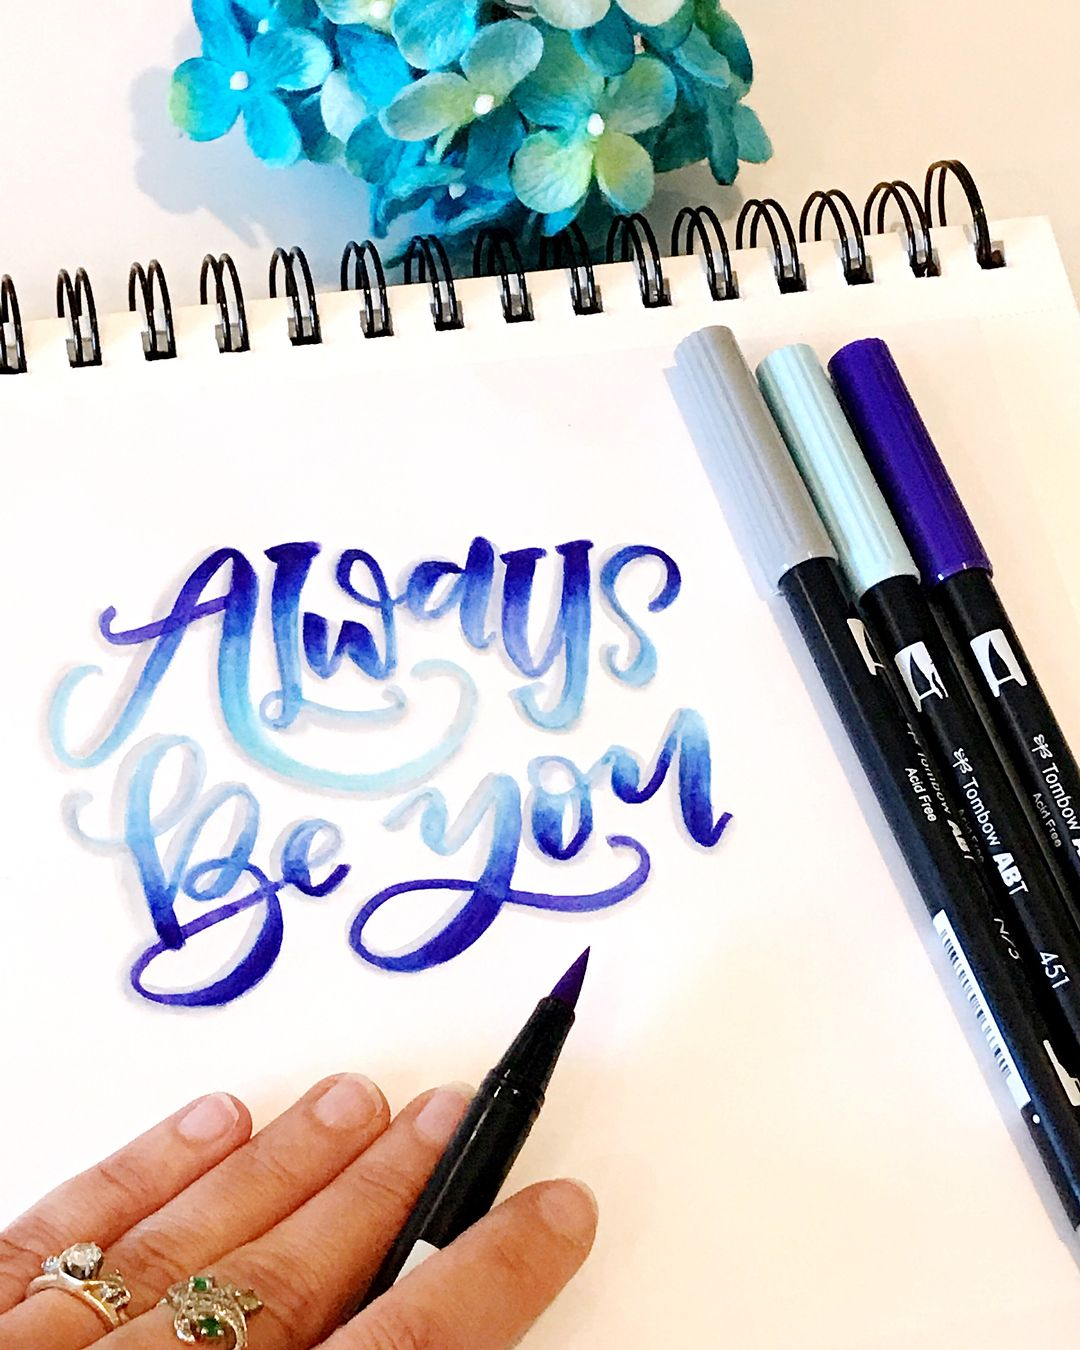 Tombowfeature Instagram Photos And Videos Hand Lettering Alphabet Brush Pen Lettering Hand Lettering Inspiration [ 1350 x 1080 Pixel ]